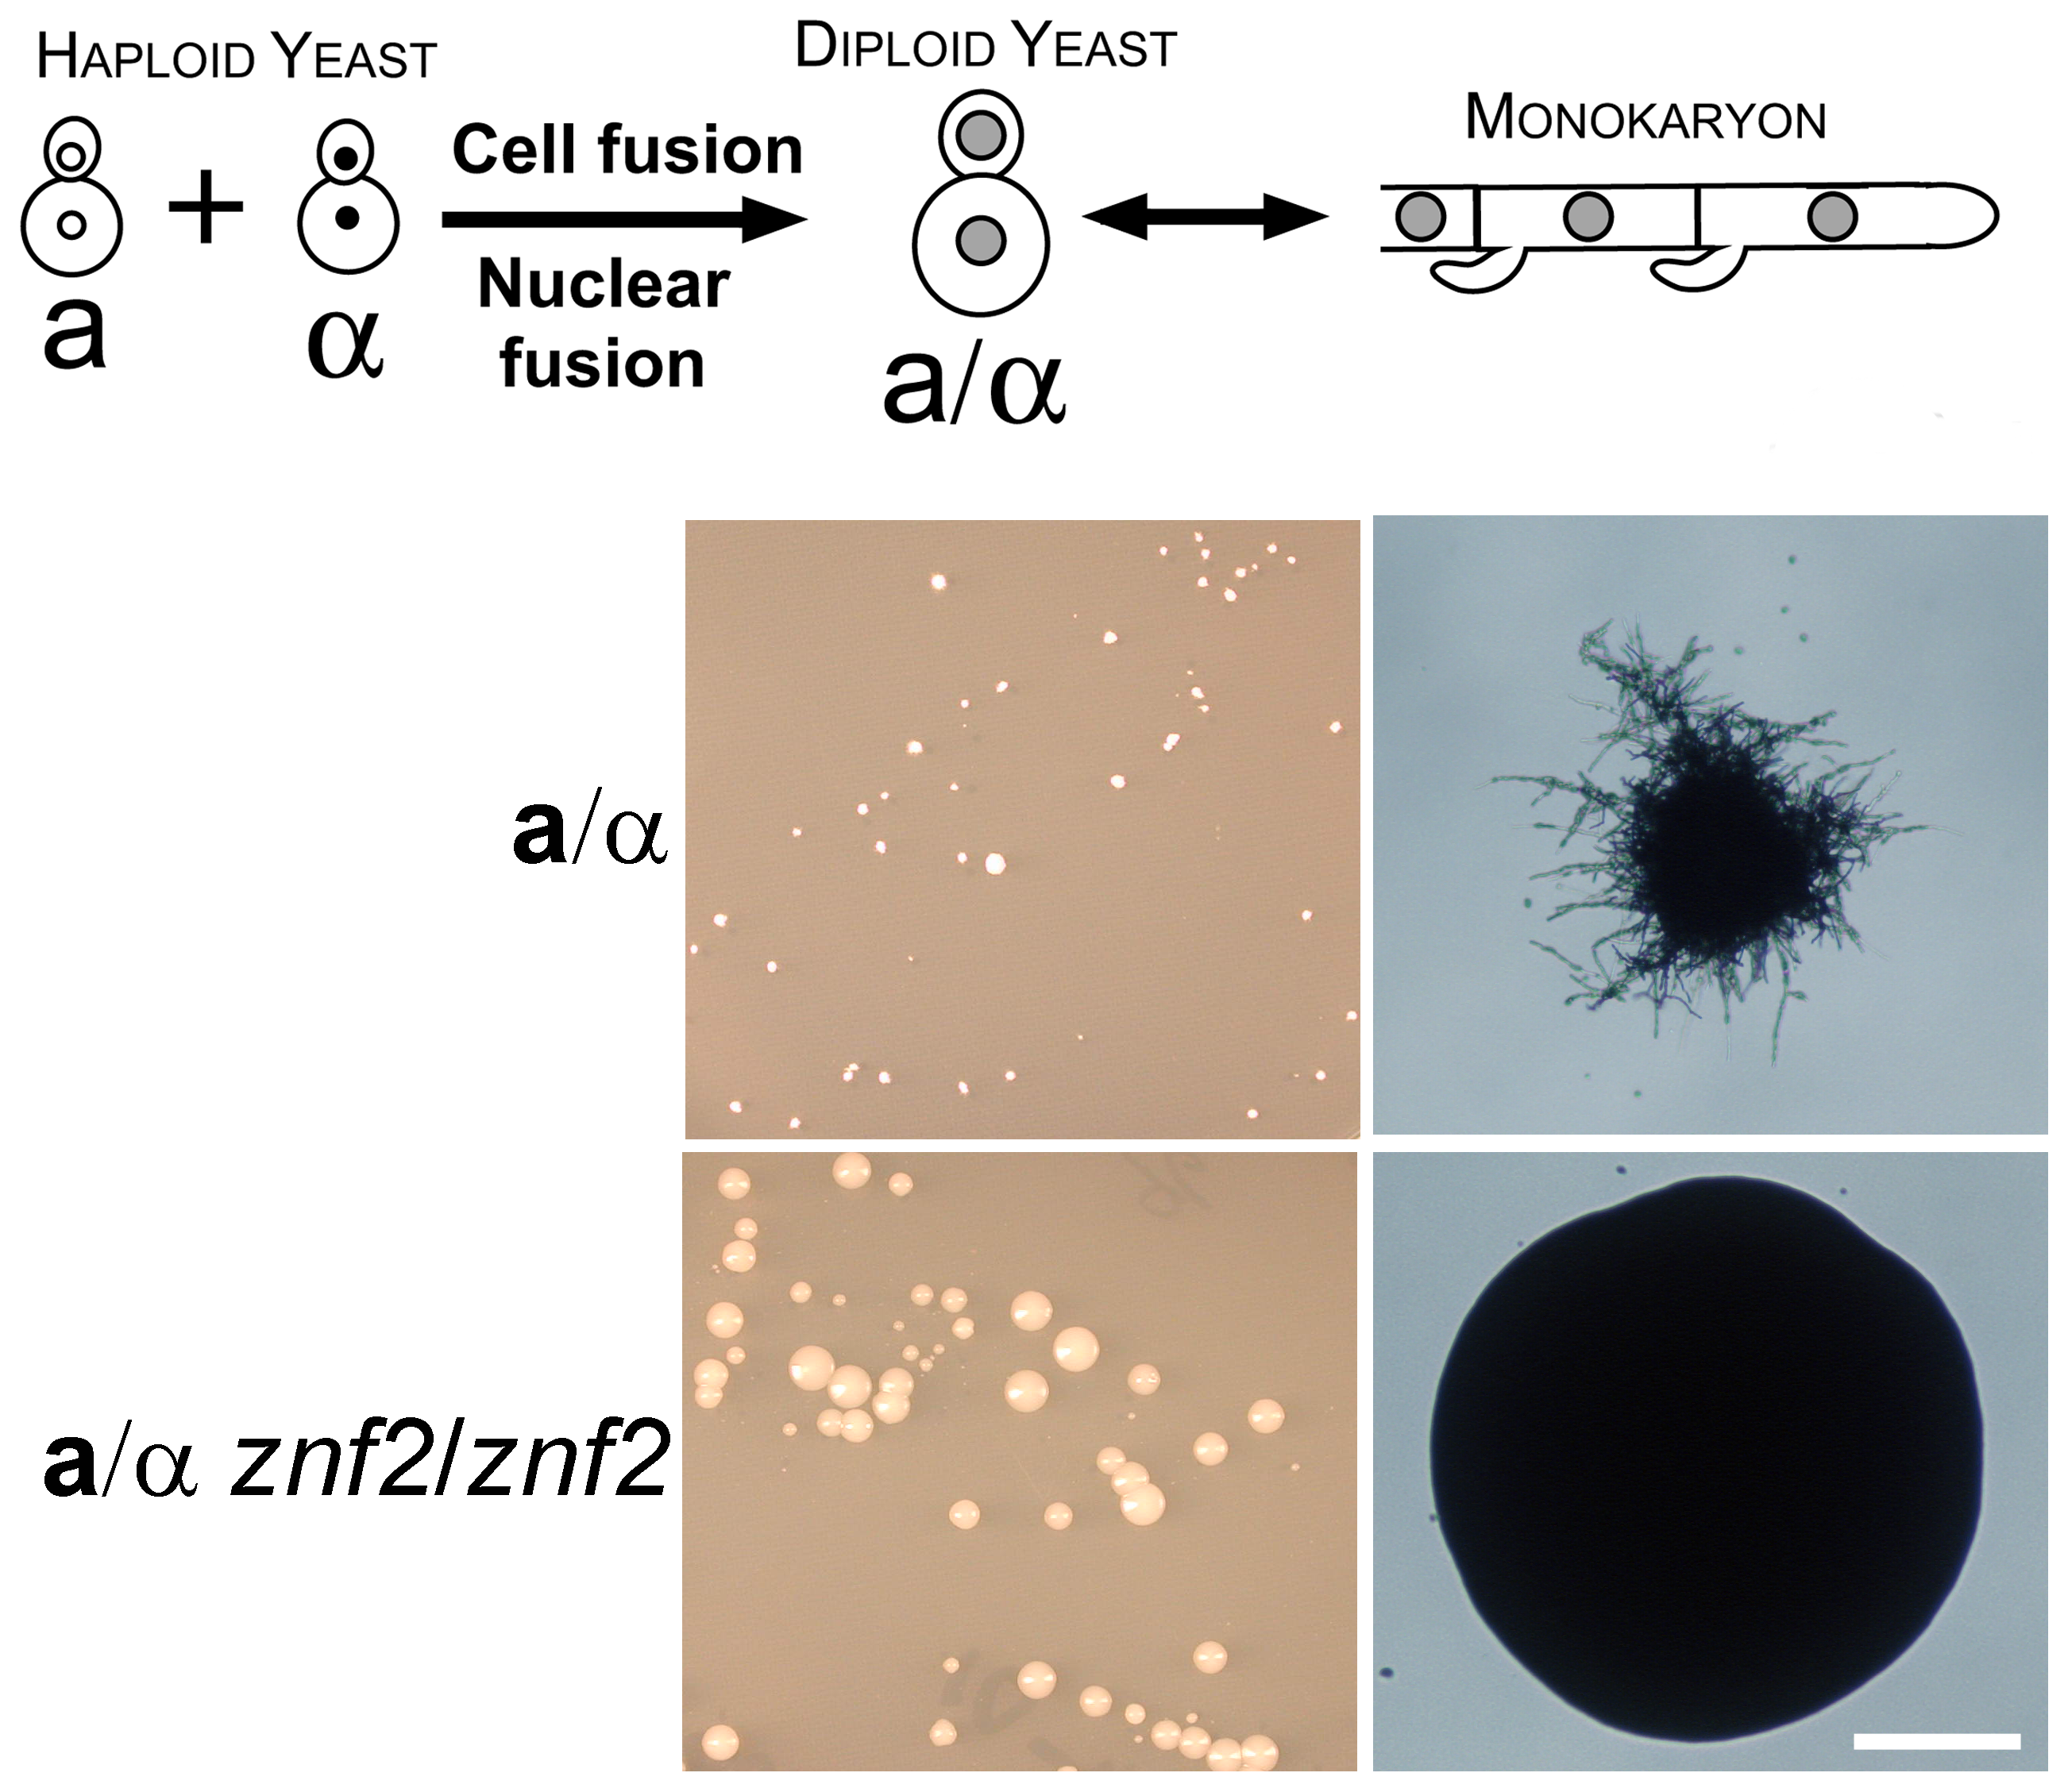 Znf2 is required for hyphal formation after cell-cell fusion during a-α mating.